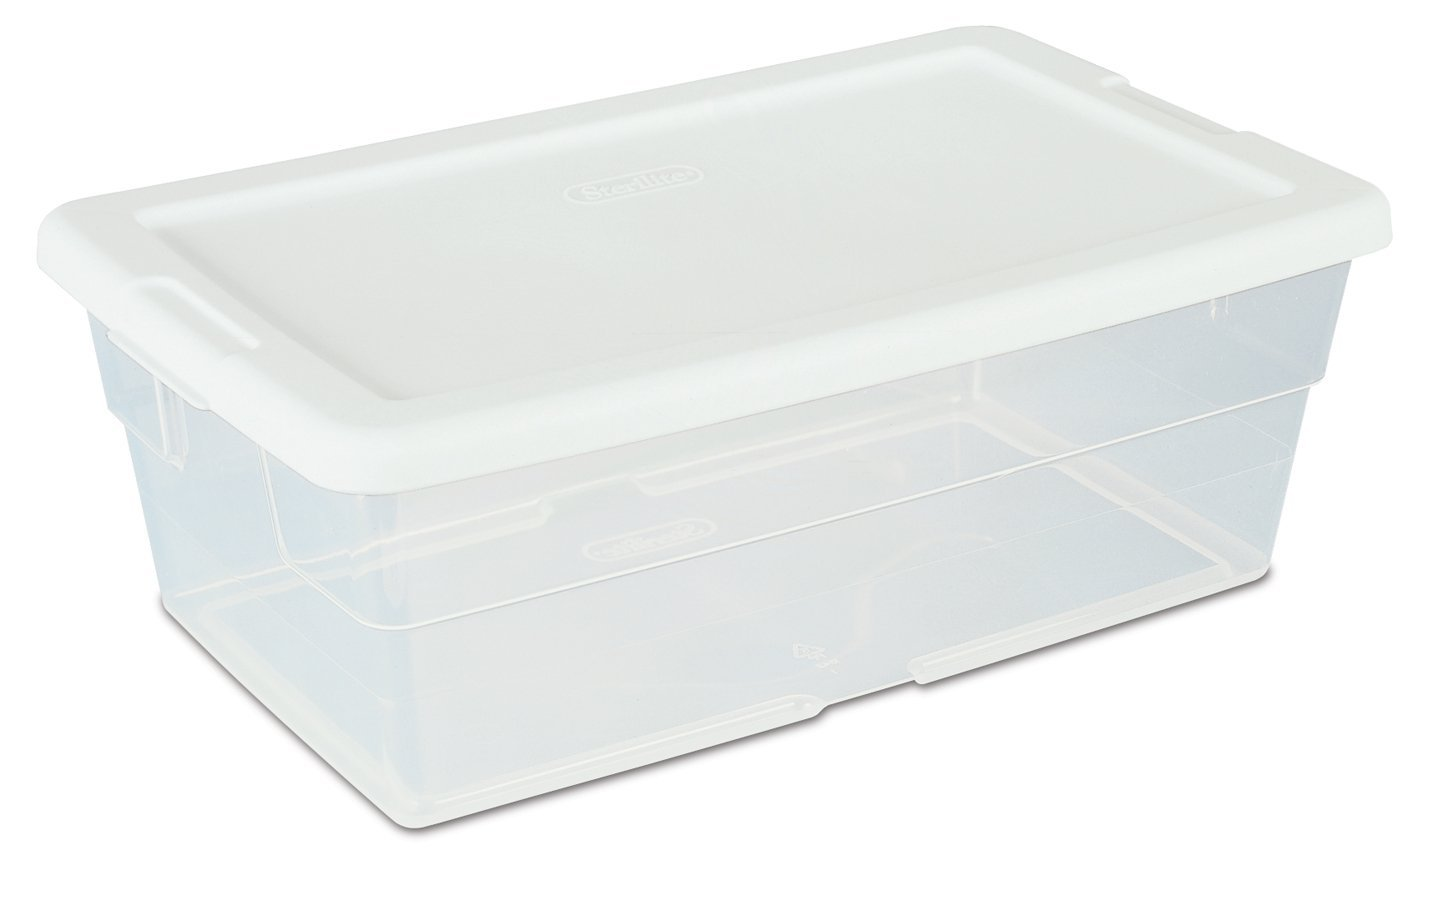 Sterilite Storage Containers with Lids